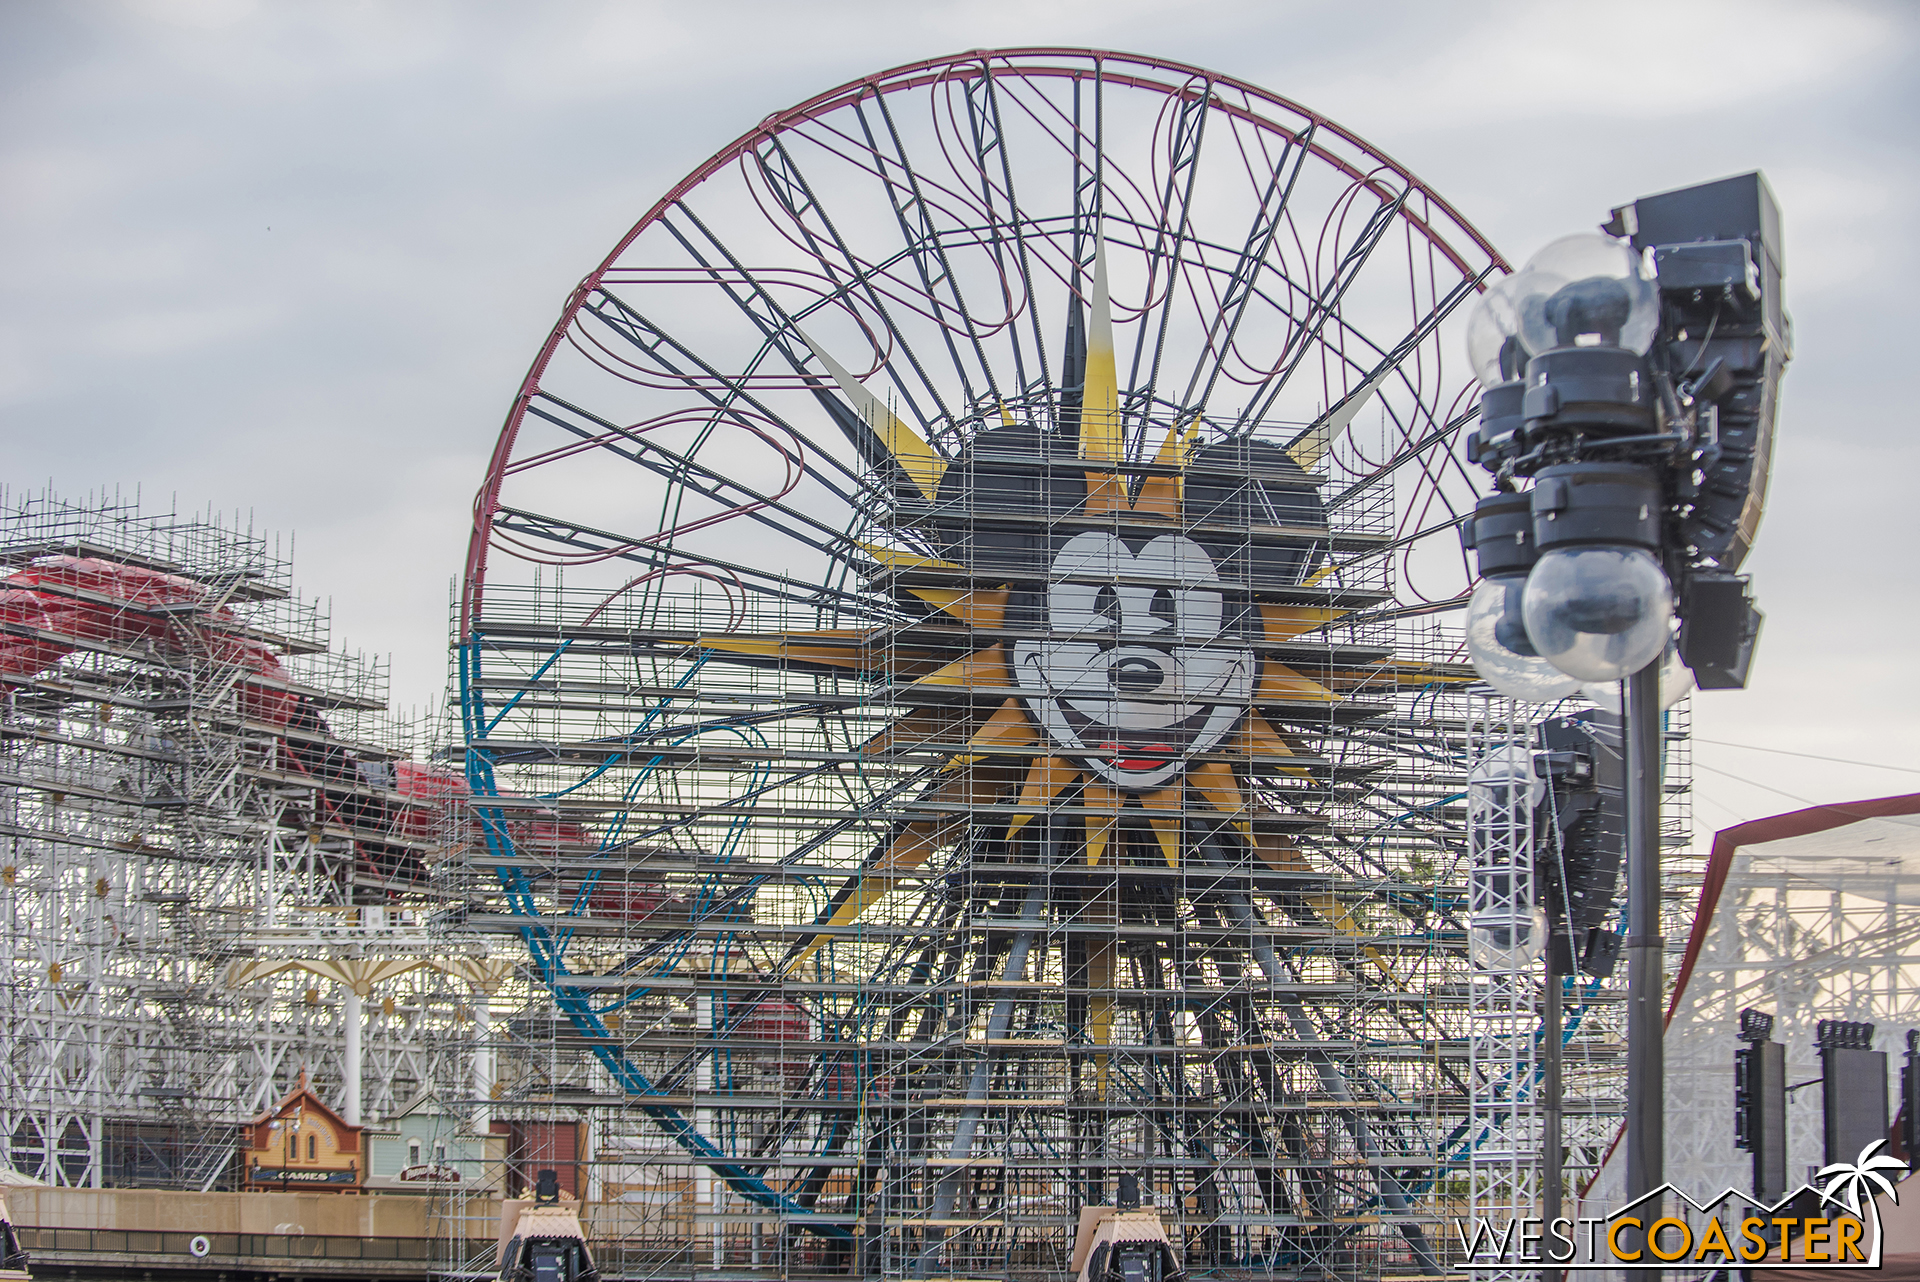 You can see it continuing behind the Fun Wheel, which looks like it hasn't gotten any new paint since two weeks ago when we last stopped by.